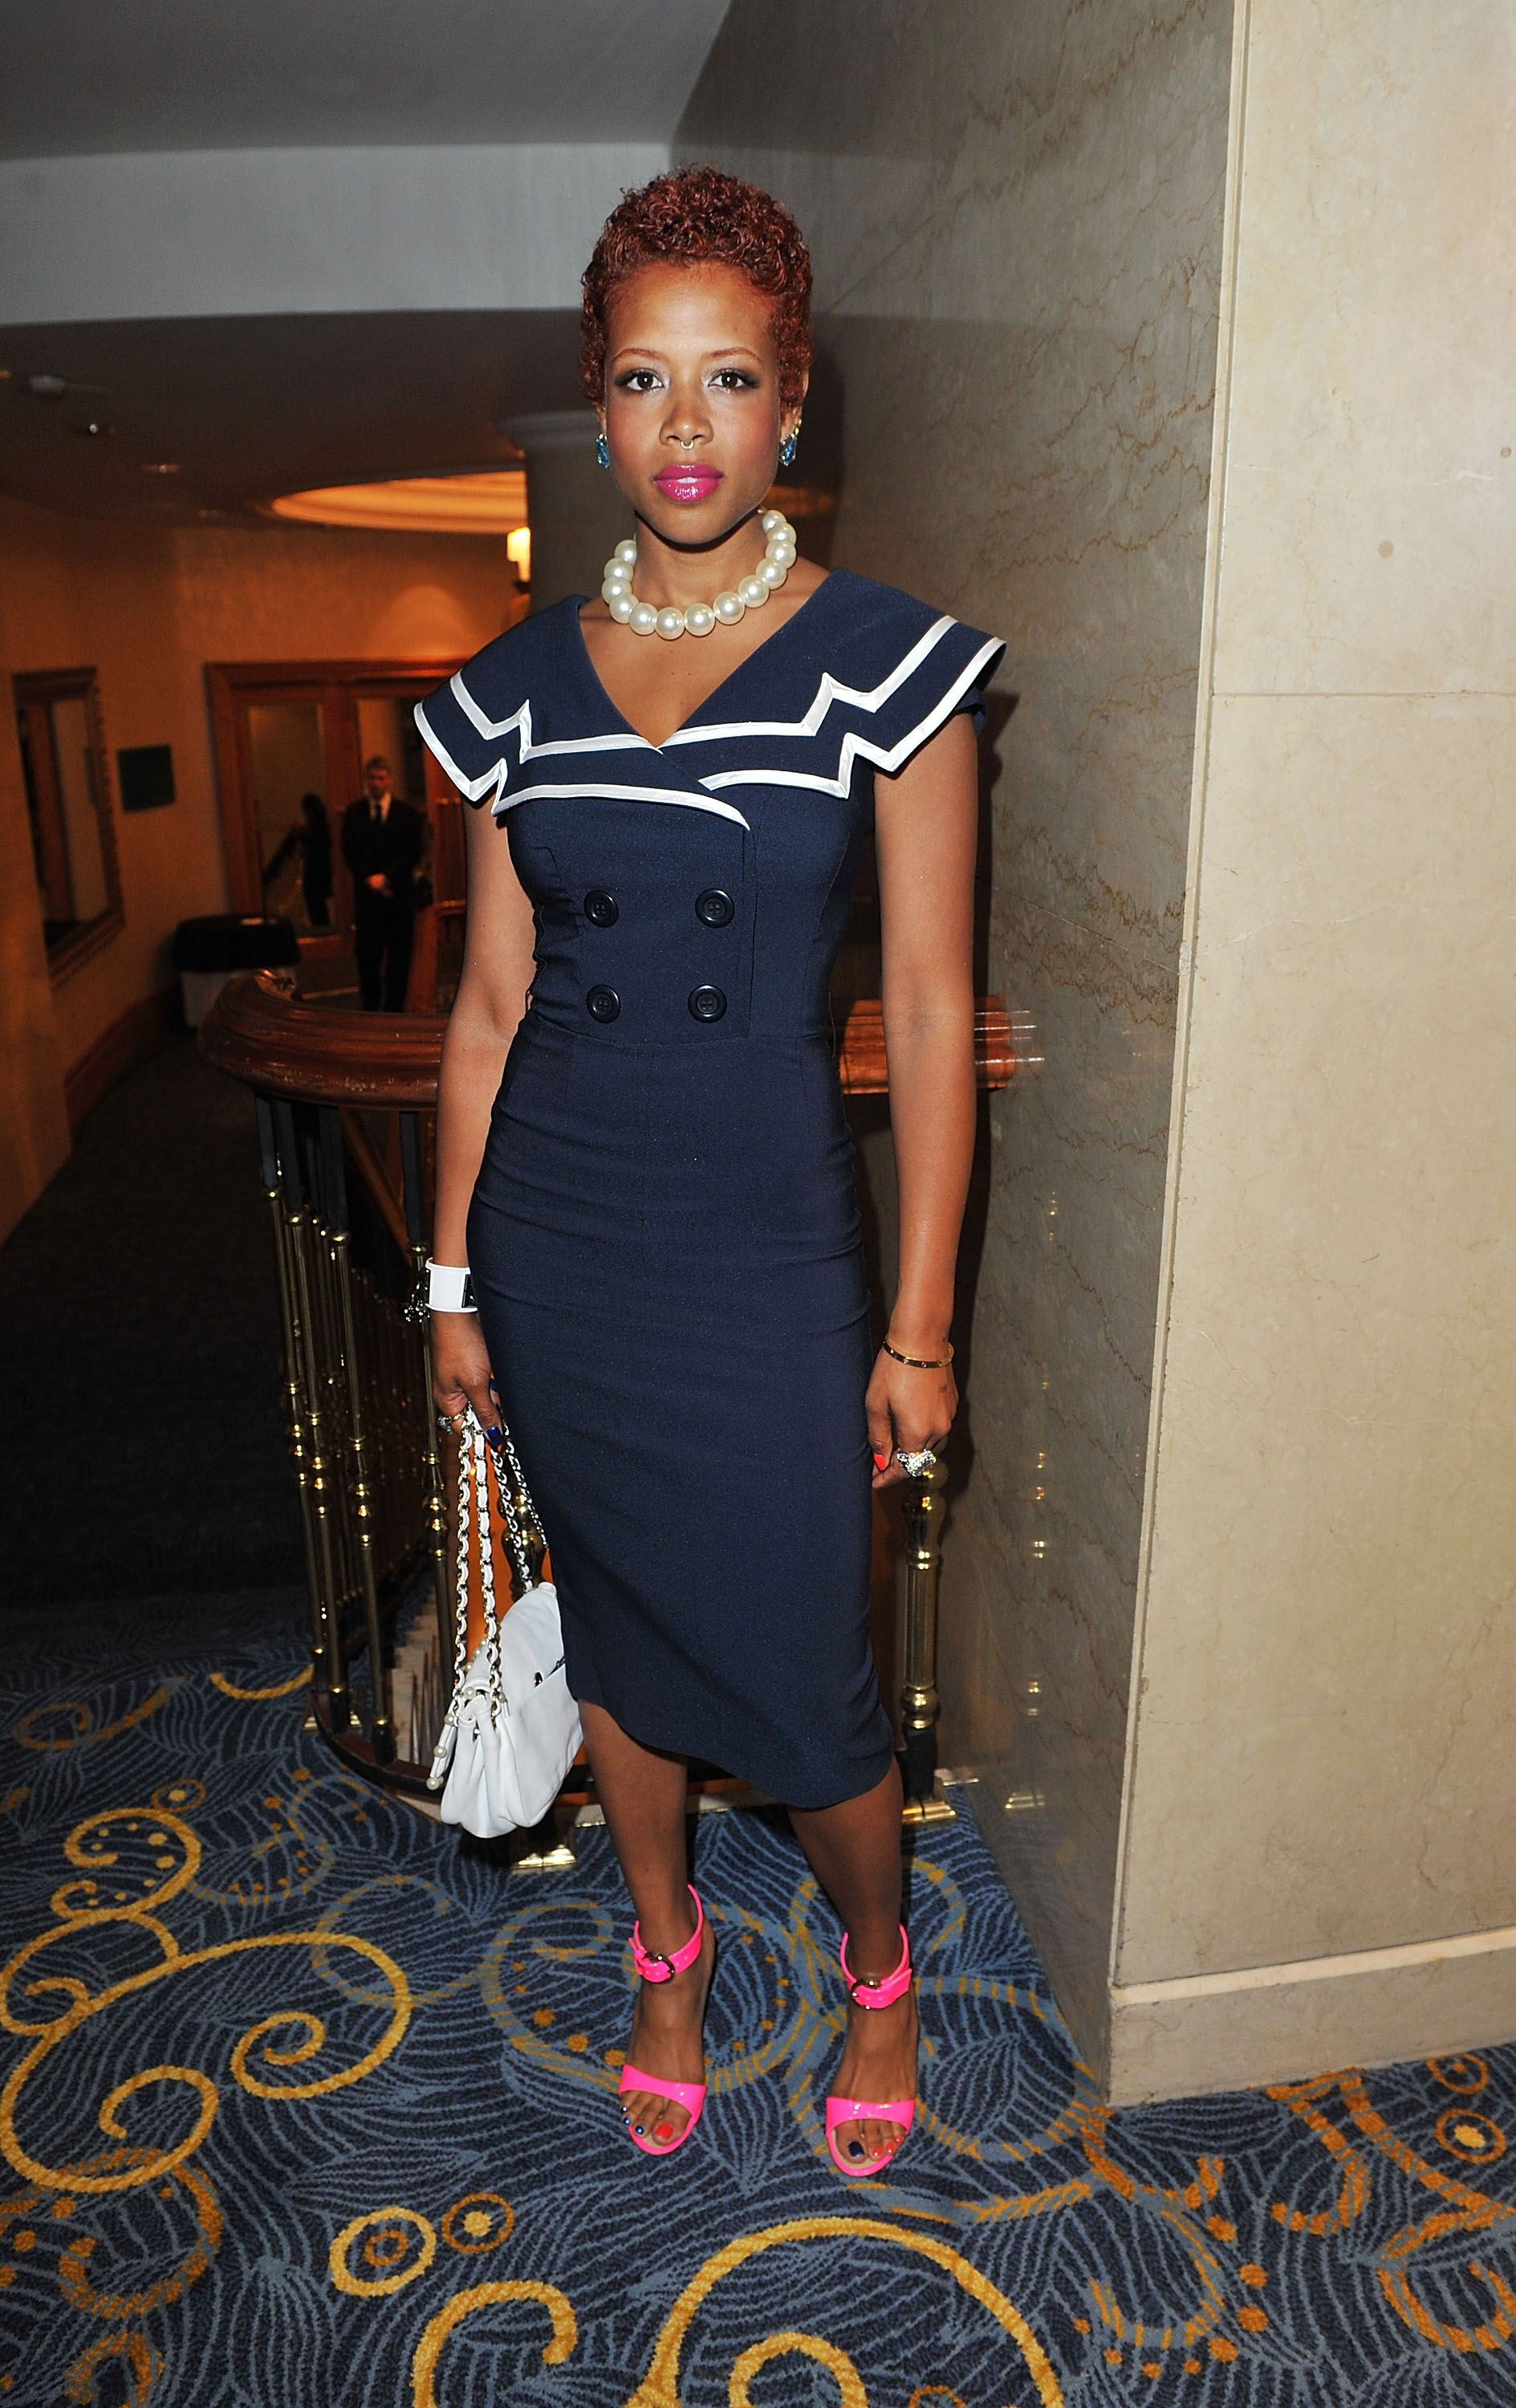 Kelis attends the 35th Nordoff Robbins 02 Silver Clef Awards at London Hilton on July 2, 2010. | Photo: Getty Images